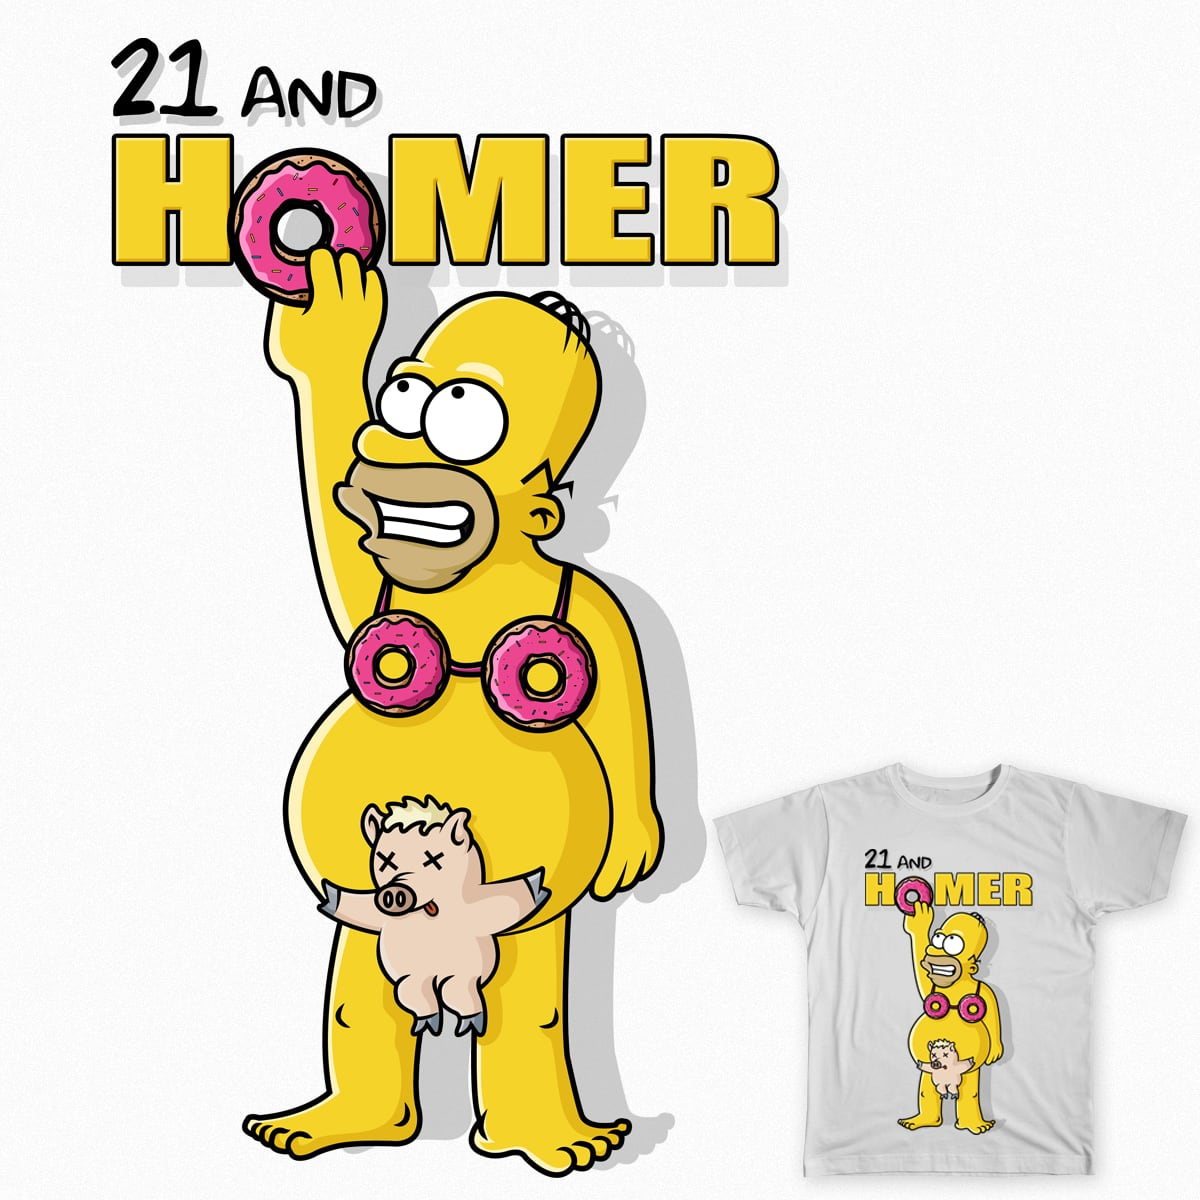 21 and HOMER by BryleNapay on Threadless